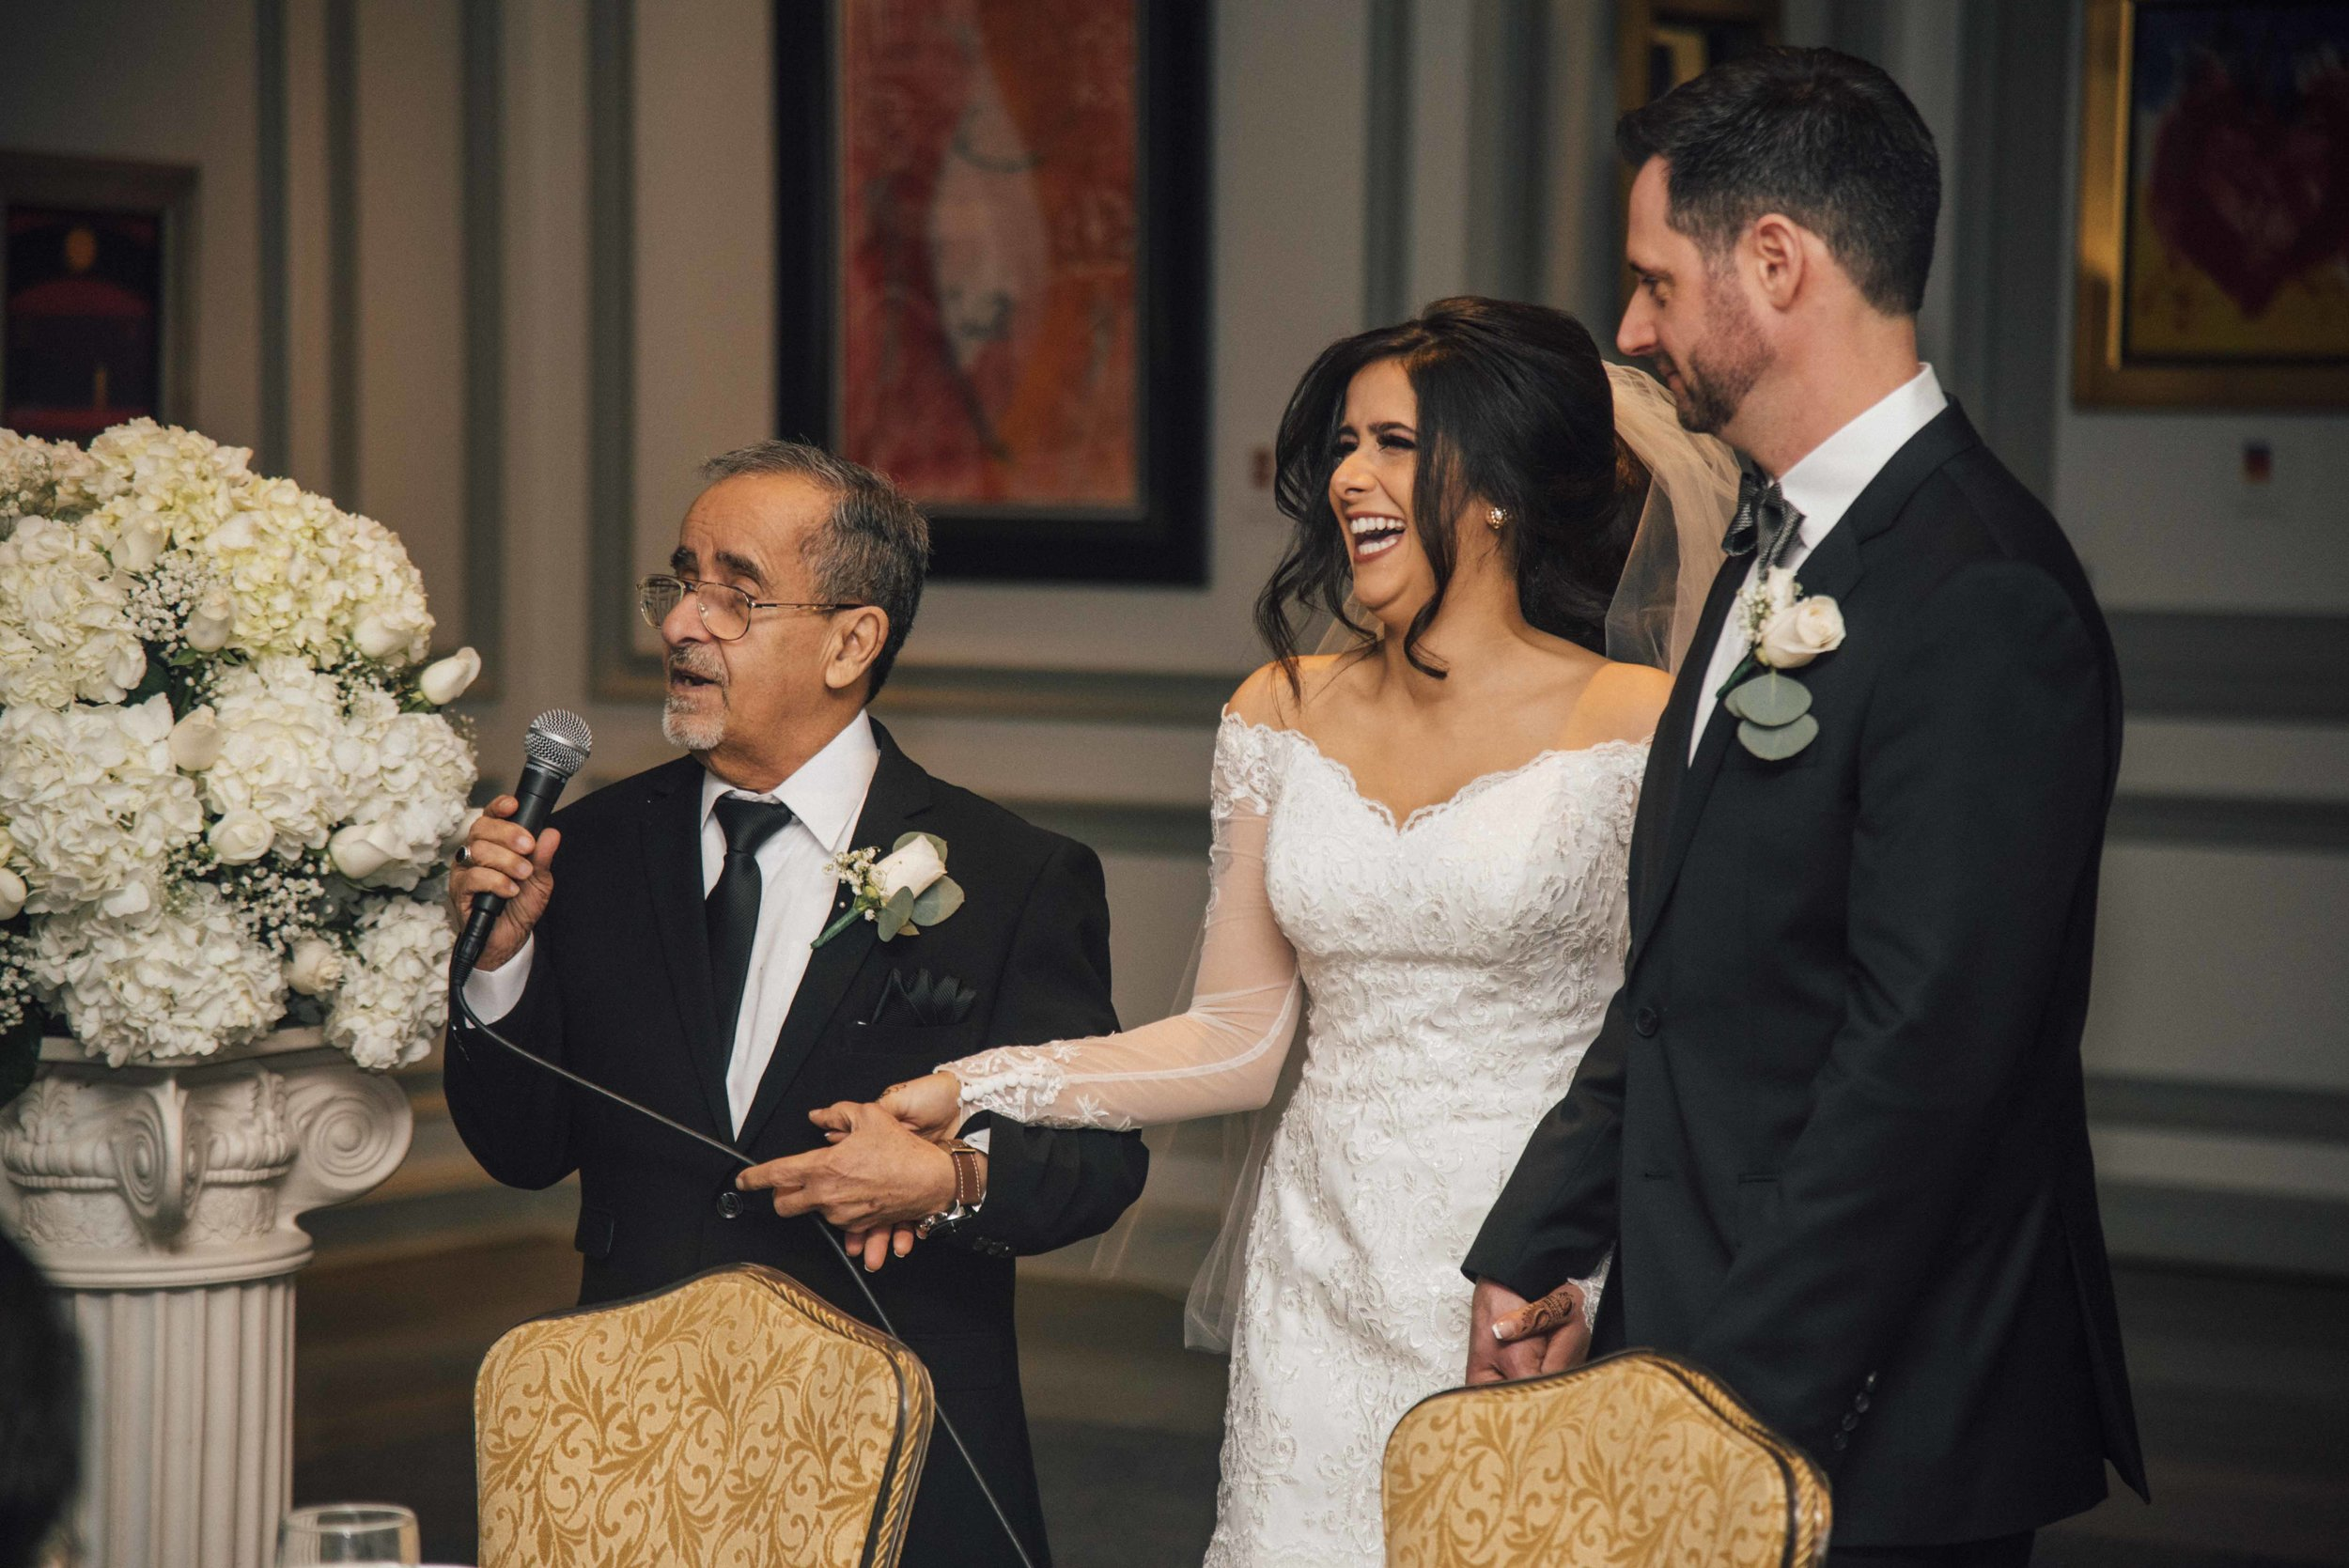 *Aumat & Bill Wedding 2019 449.jpg